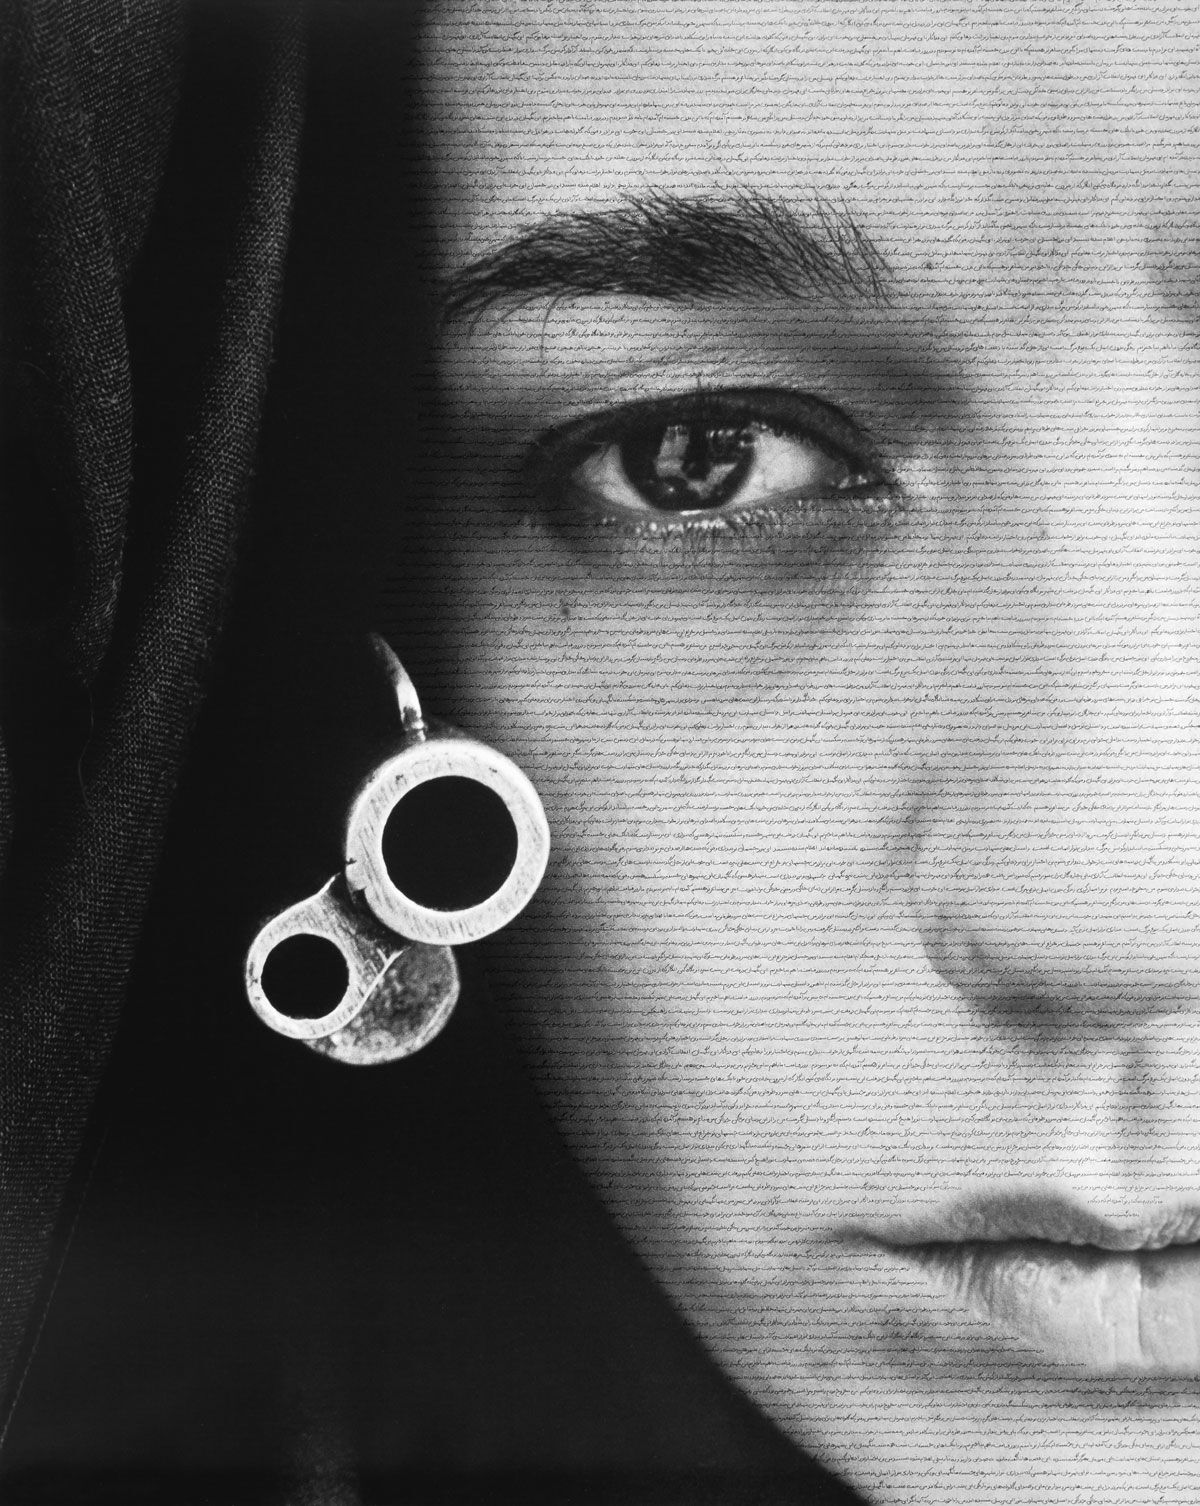 Shirin Neshat, Speechless,  1996. © Shirin Neshat. Courtesy of the artist and Gladstone Gallery, New York and Brussels.